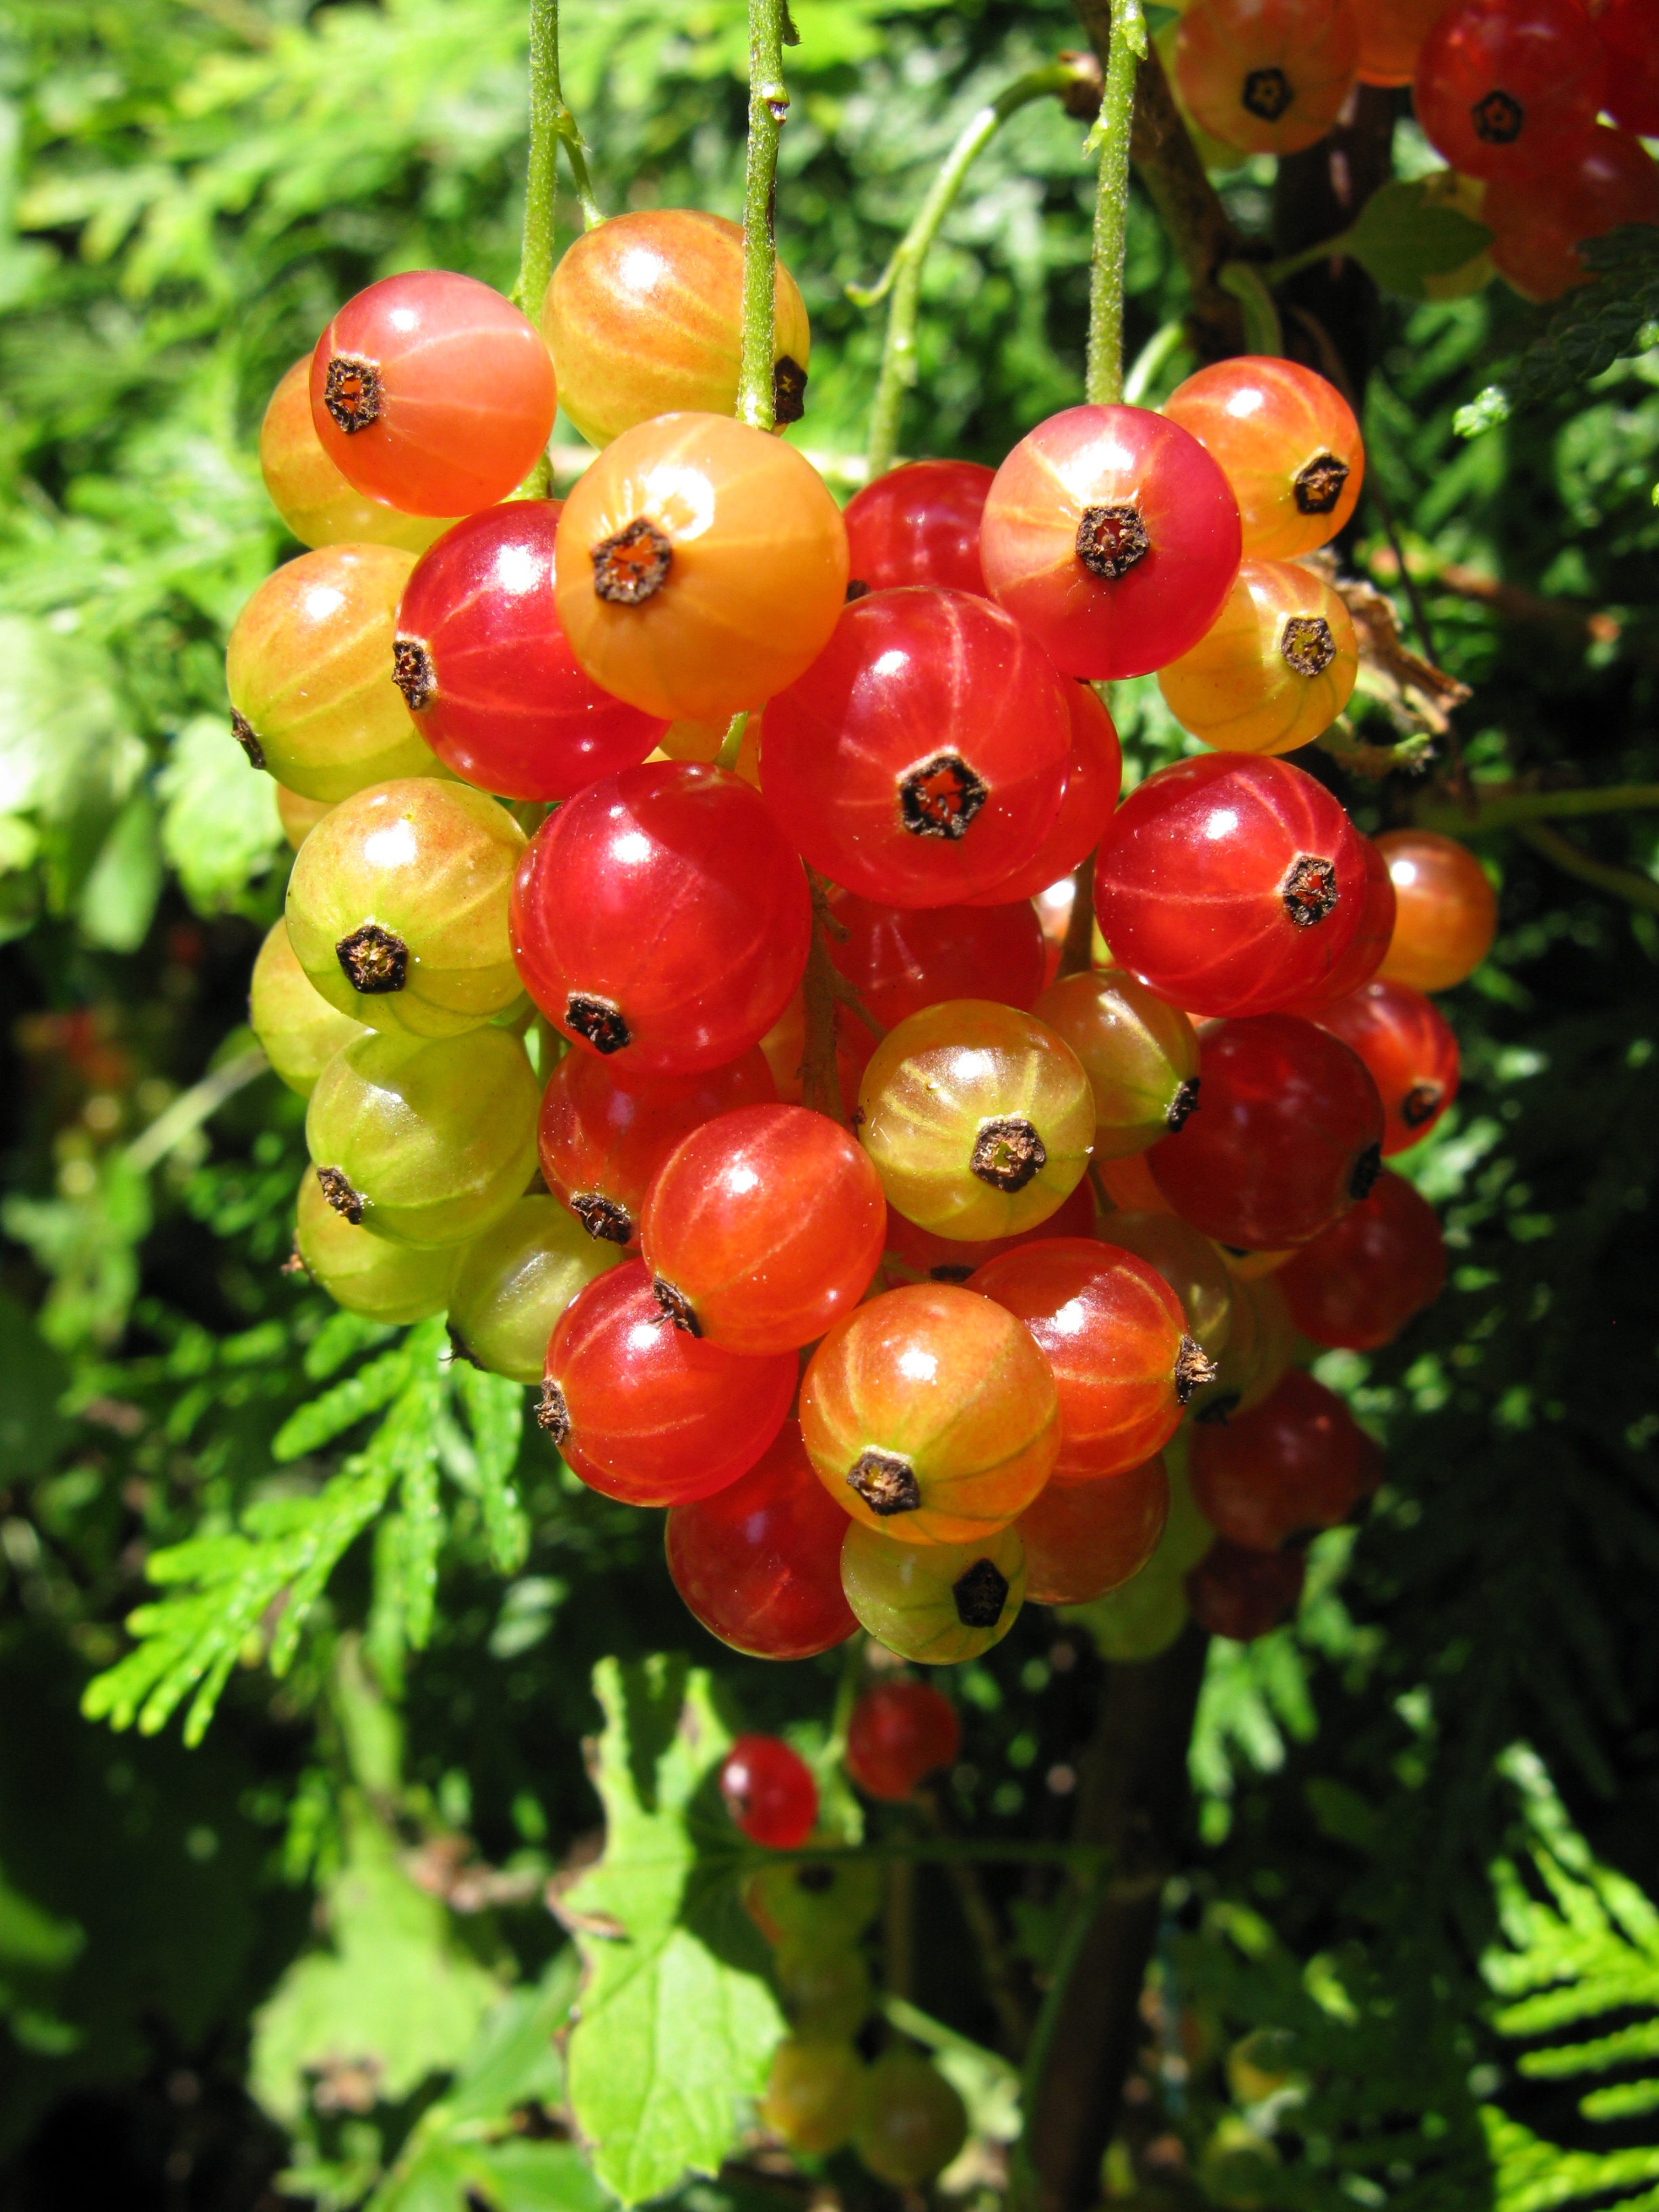 where to buy red currant berries